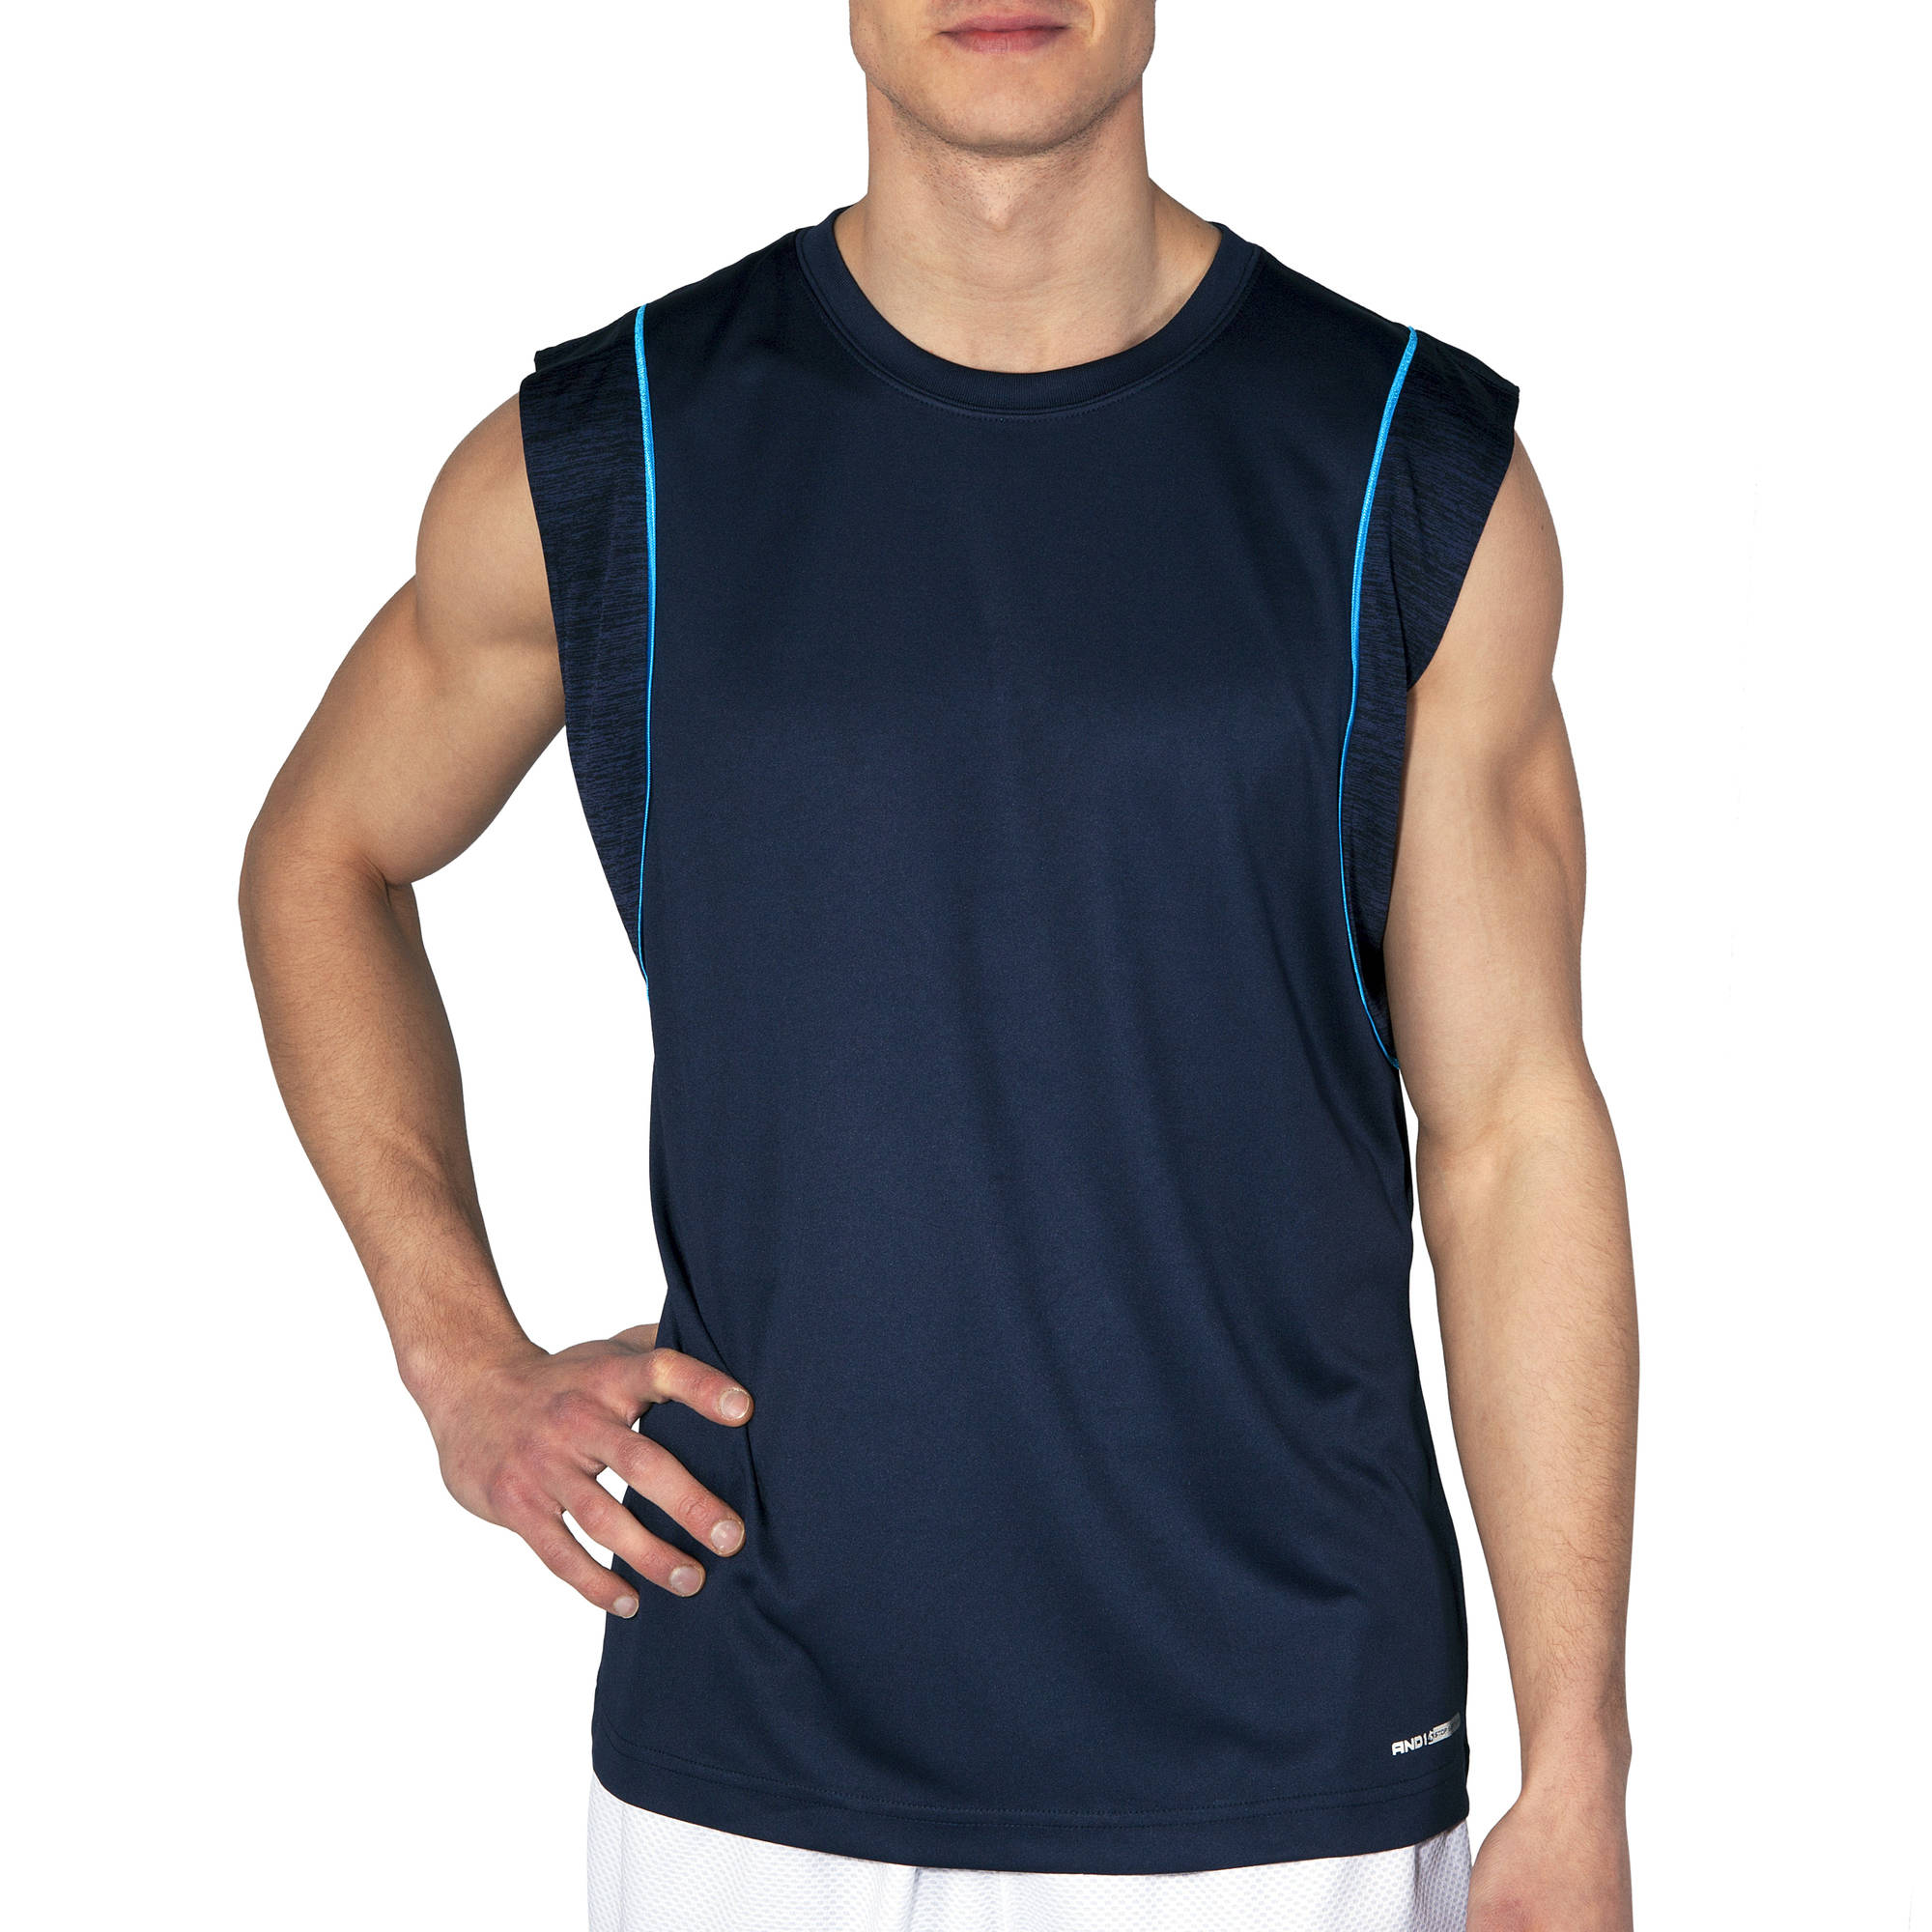 AND1 Mens Dont Reach Performance Sleeveless